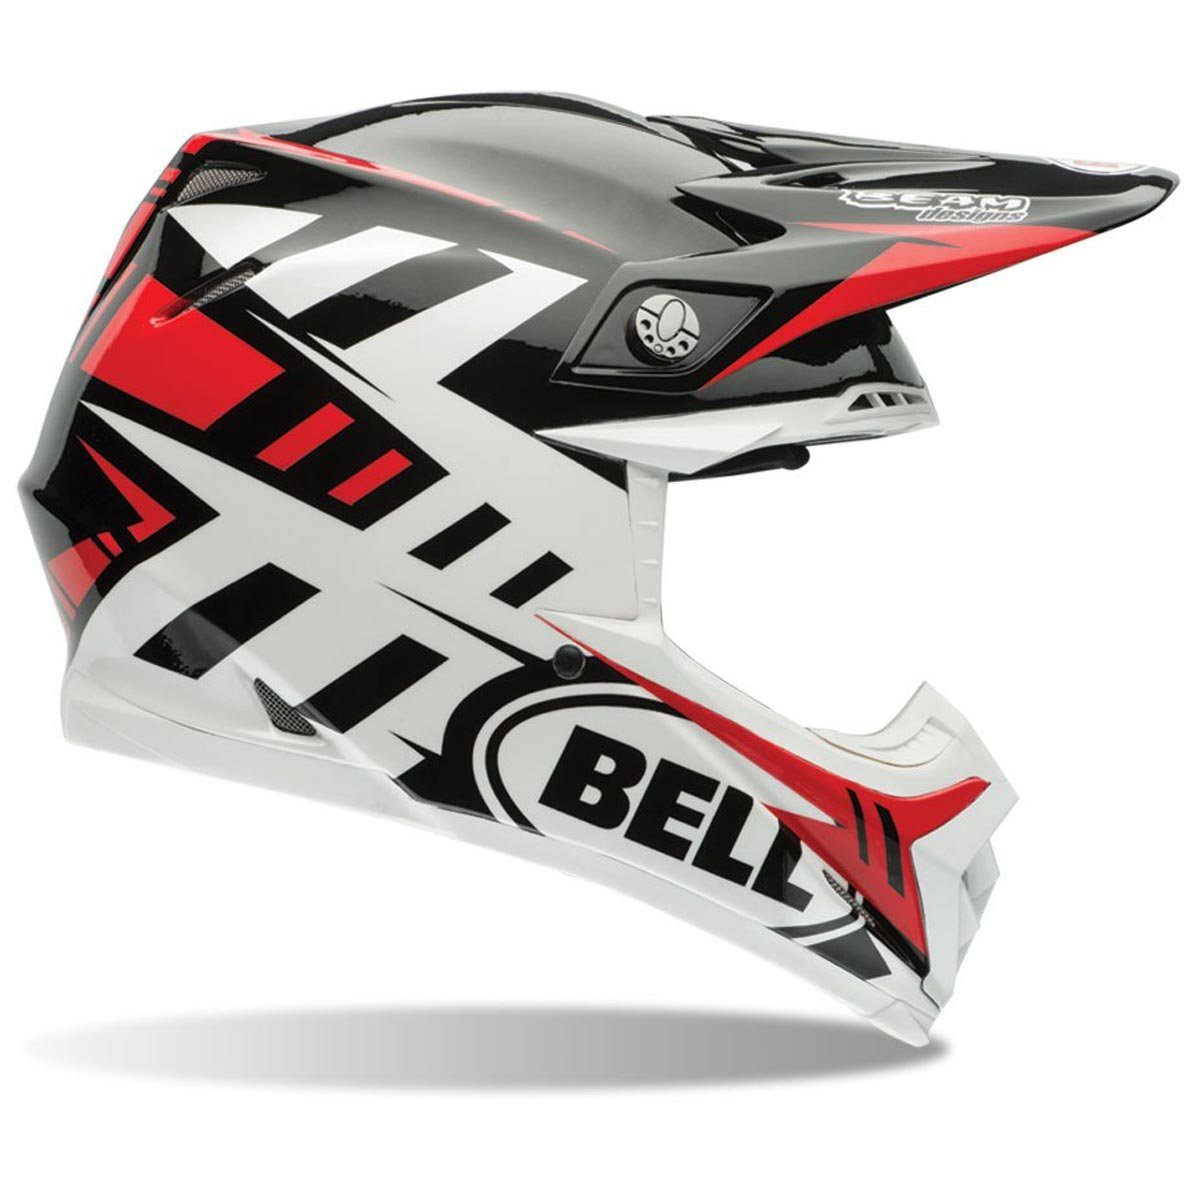 Amazon.com: Bell Moto-9 Full-Face Motorcycle Helmet (Fasthouse Black/Flo Yellow, Small)(Non-Current Graphic): Automotive